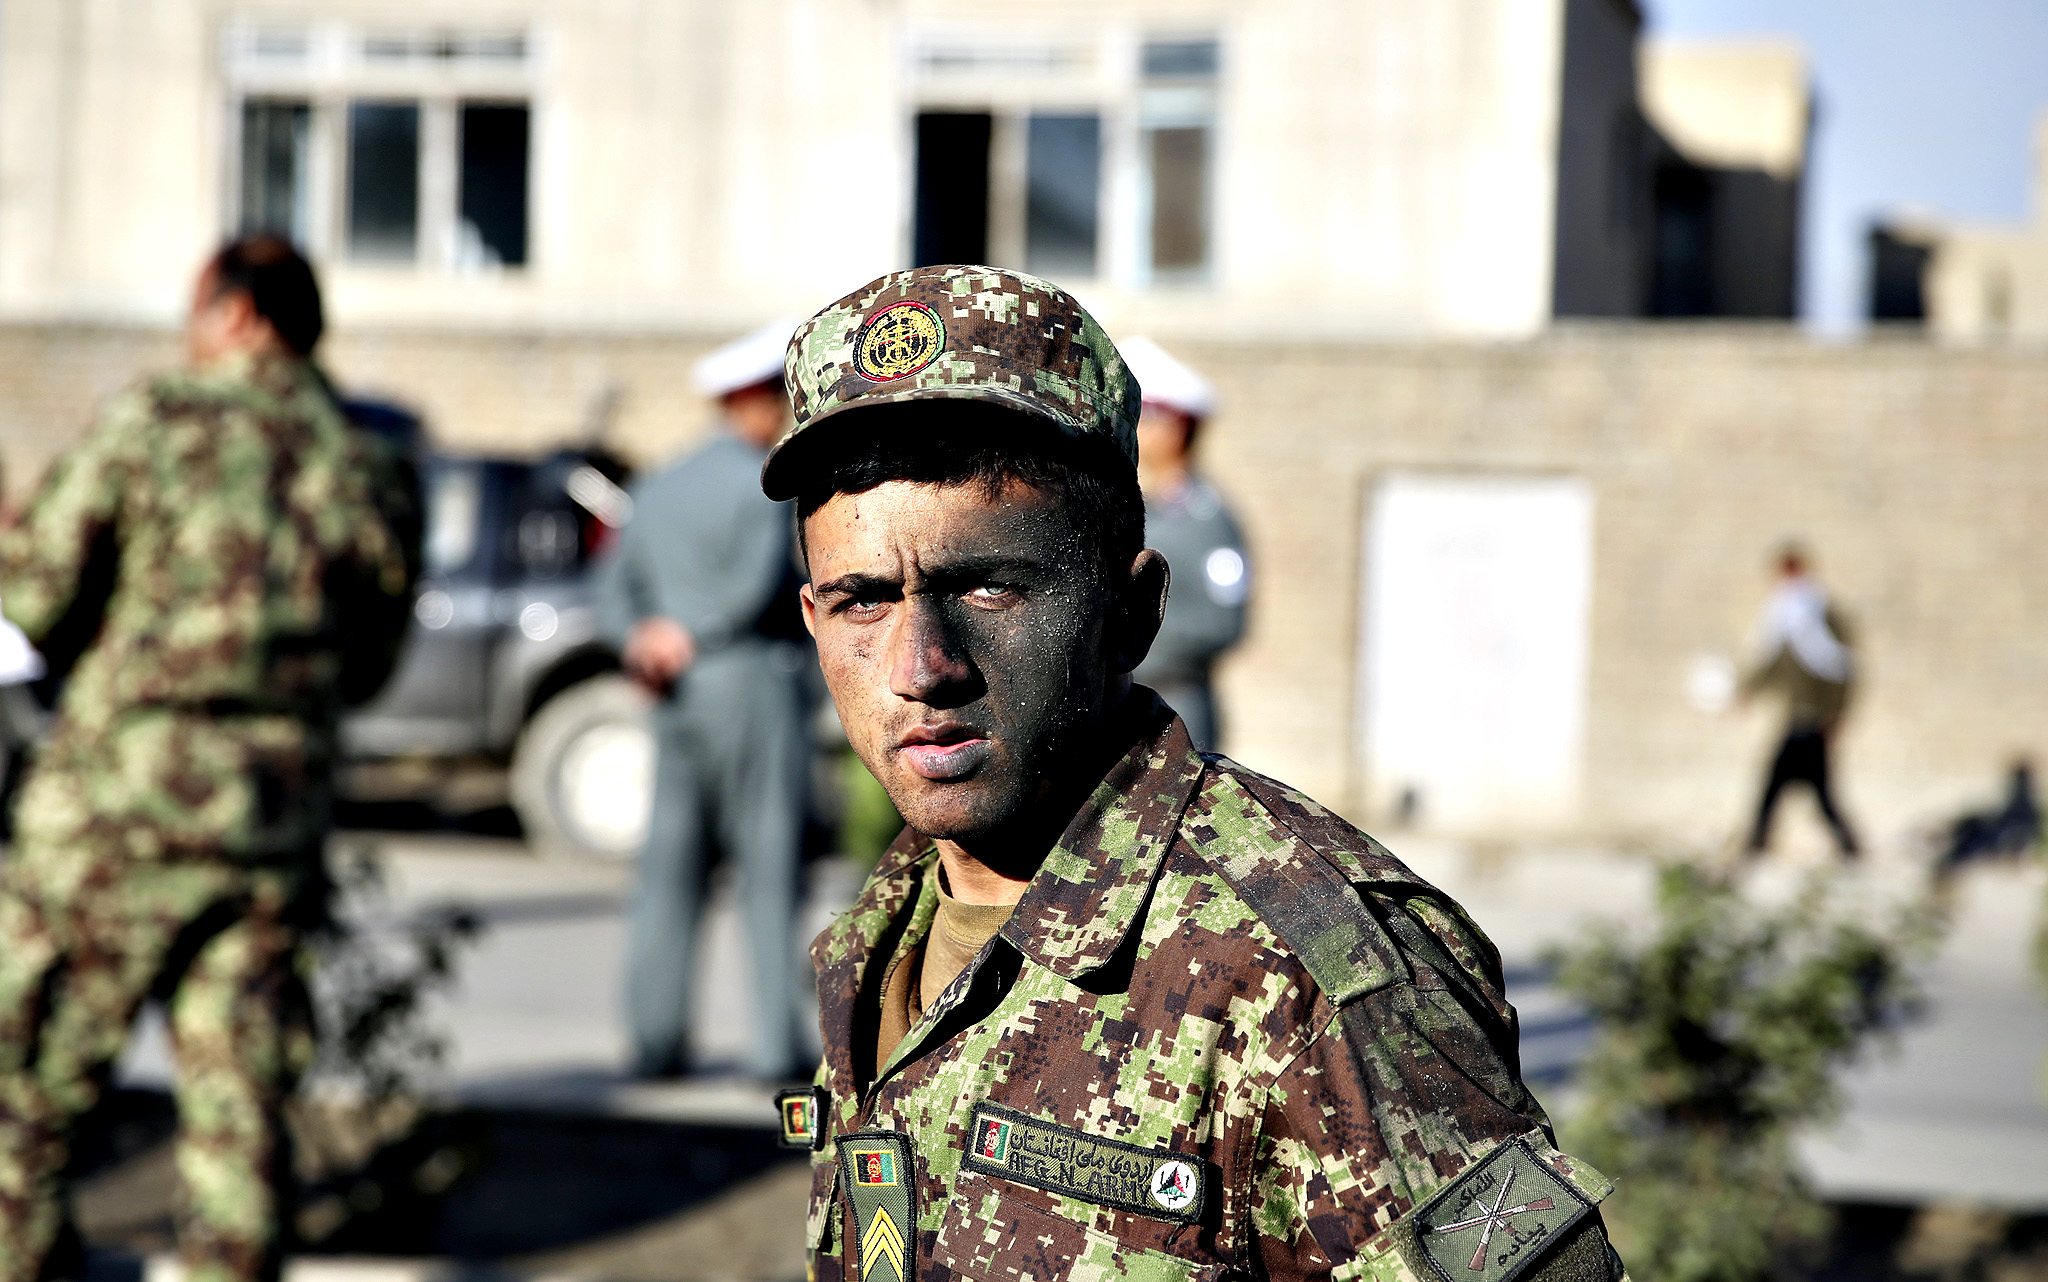 An Afghan National Army soldger who survived a road side bomb explosion, walks by the site of the blast in Kabul, Afghanistan, Tuesday, Oct. 21, 2014. At least four Afghan soldiers have been killed in the attack in the capital.